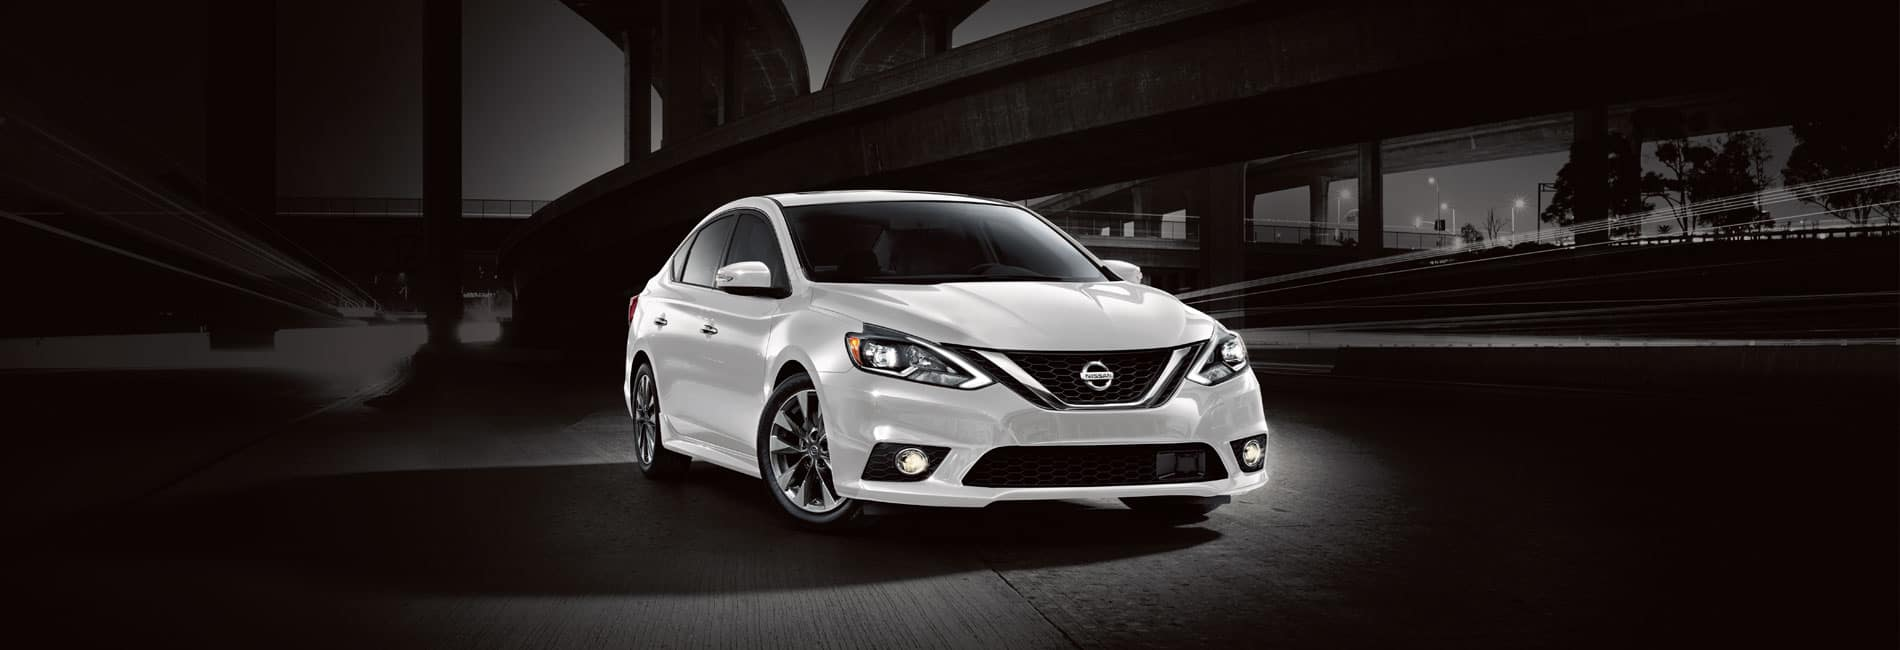 2018 Nissan Sentra Trims at Star Nissan